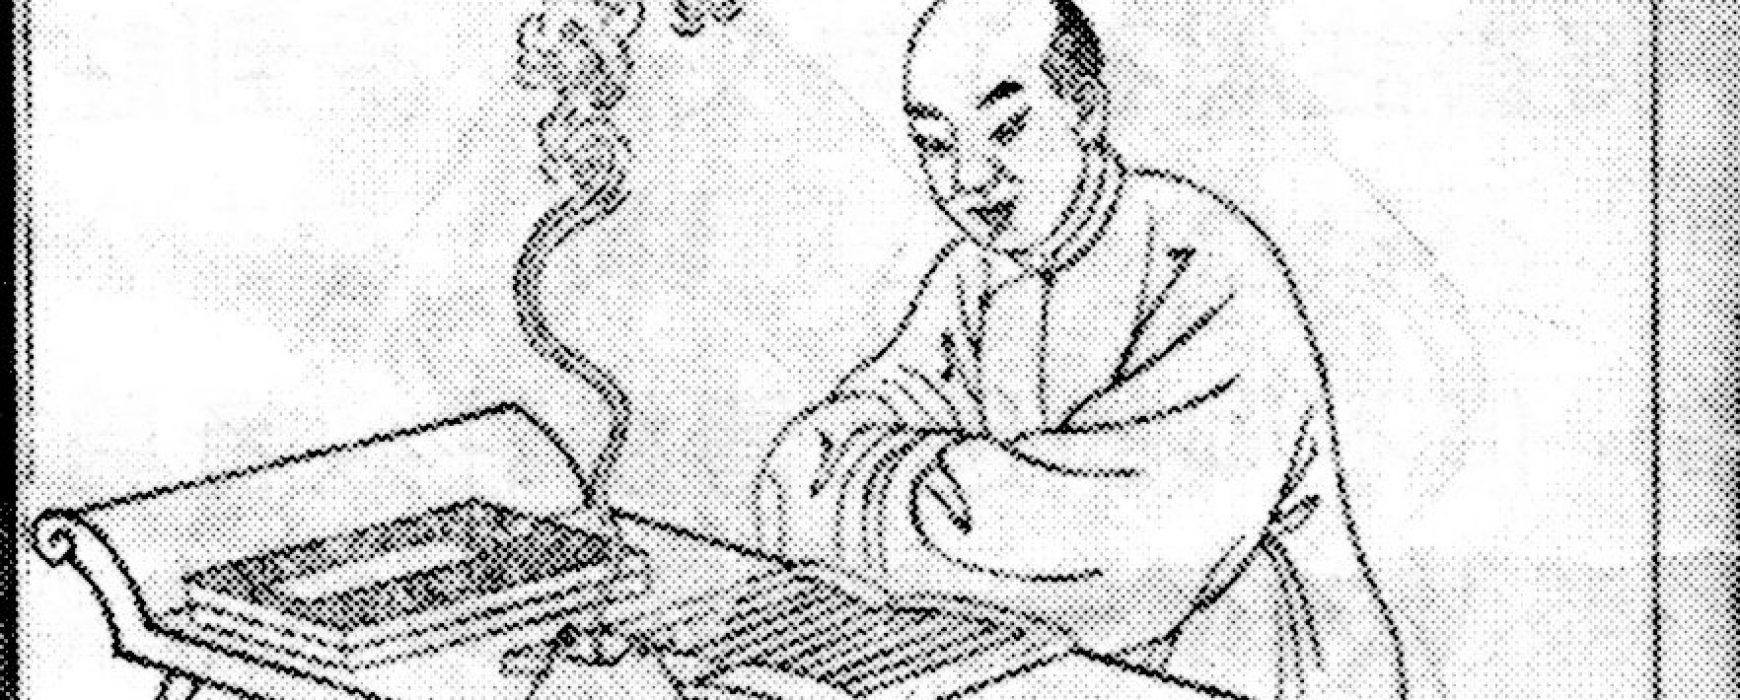 CRTA workshop on reading late imperial Chinese religious texts